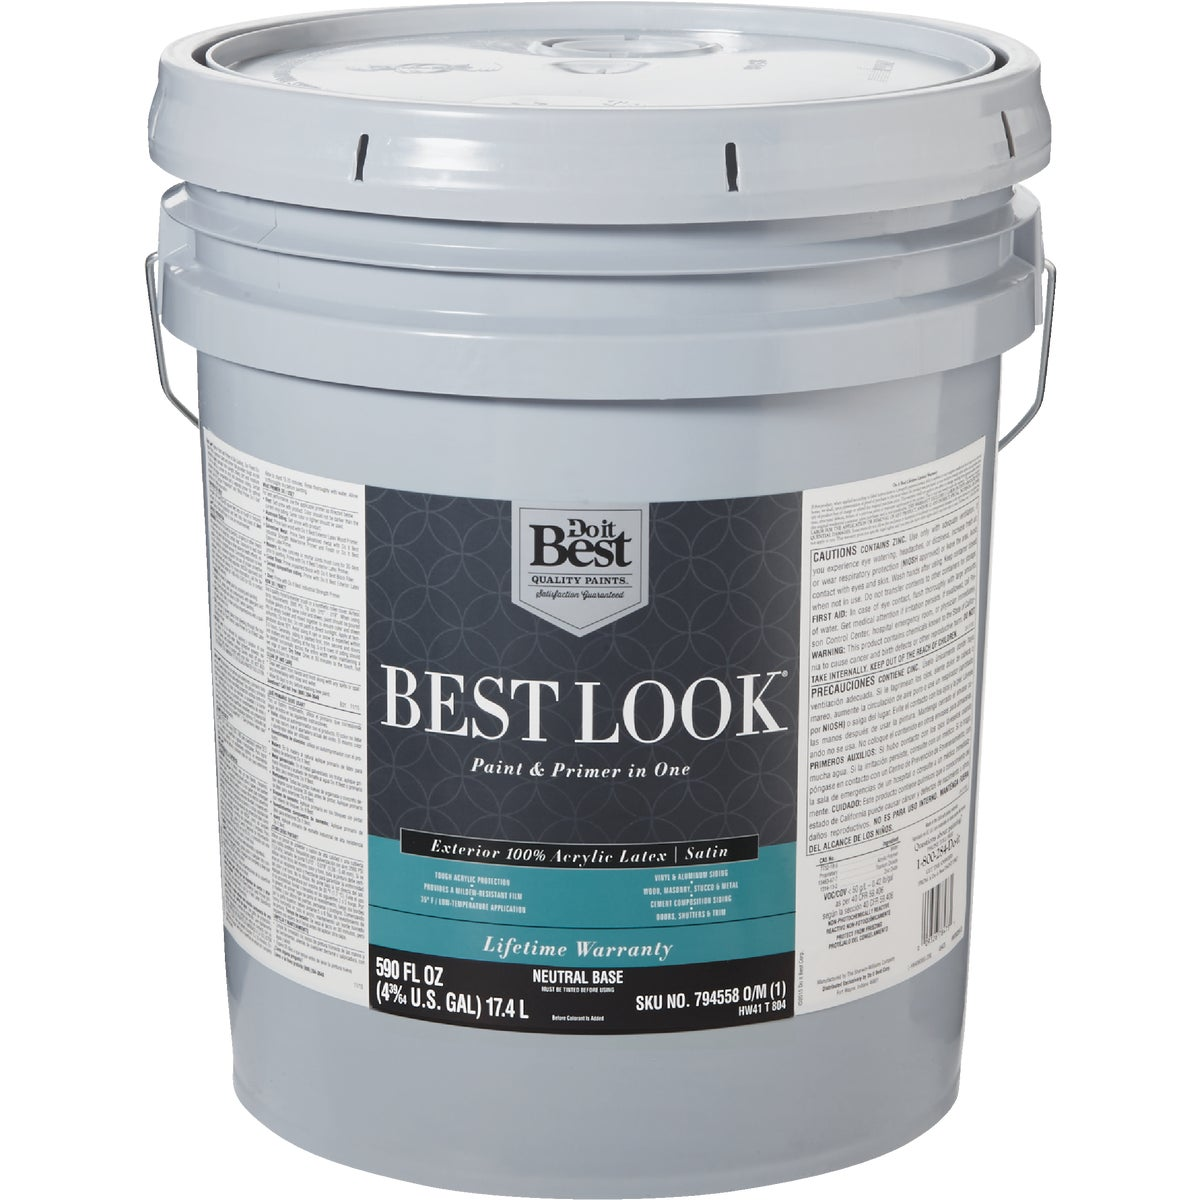 EXT SAT NEUTRAL BS PAINT - HW41T0804-20 by Do it Best